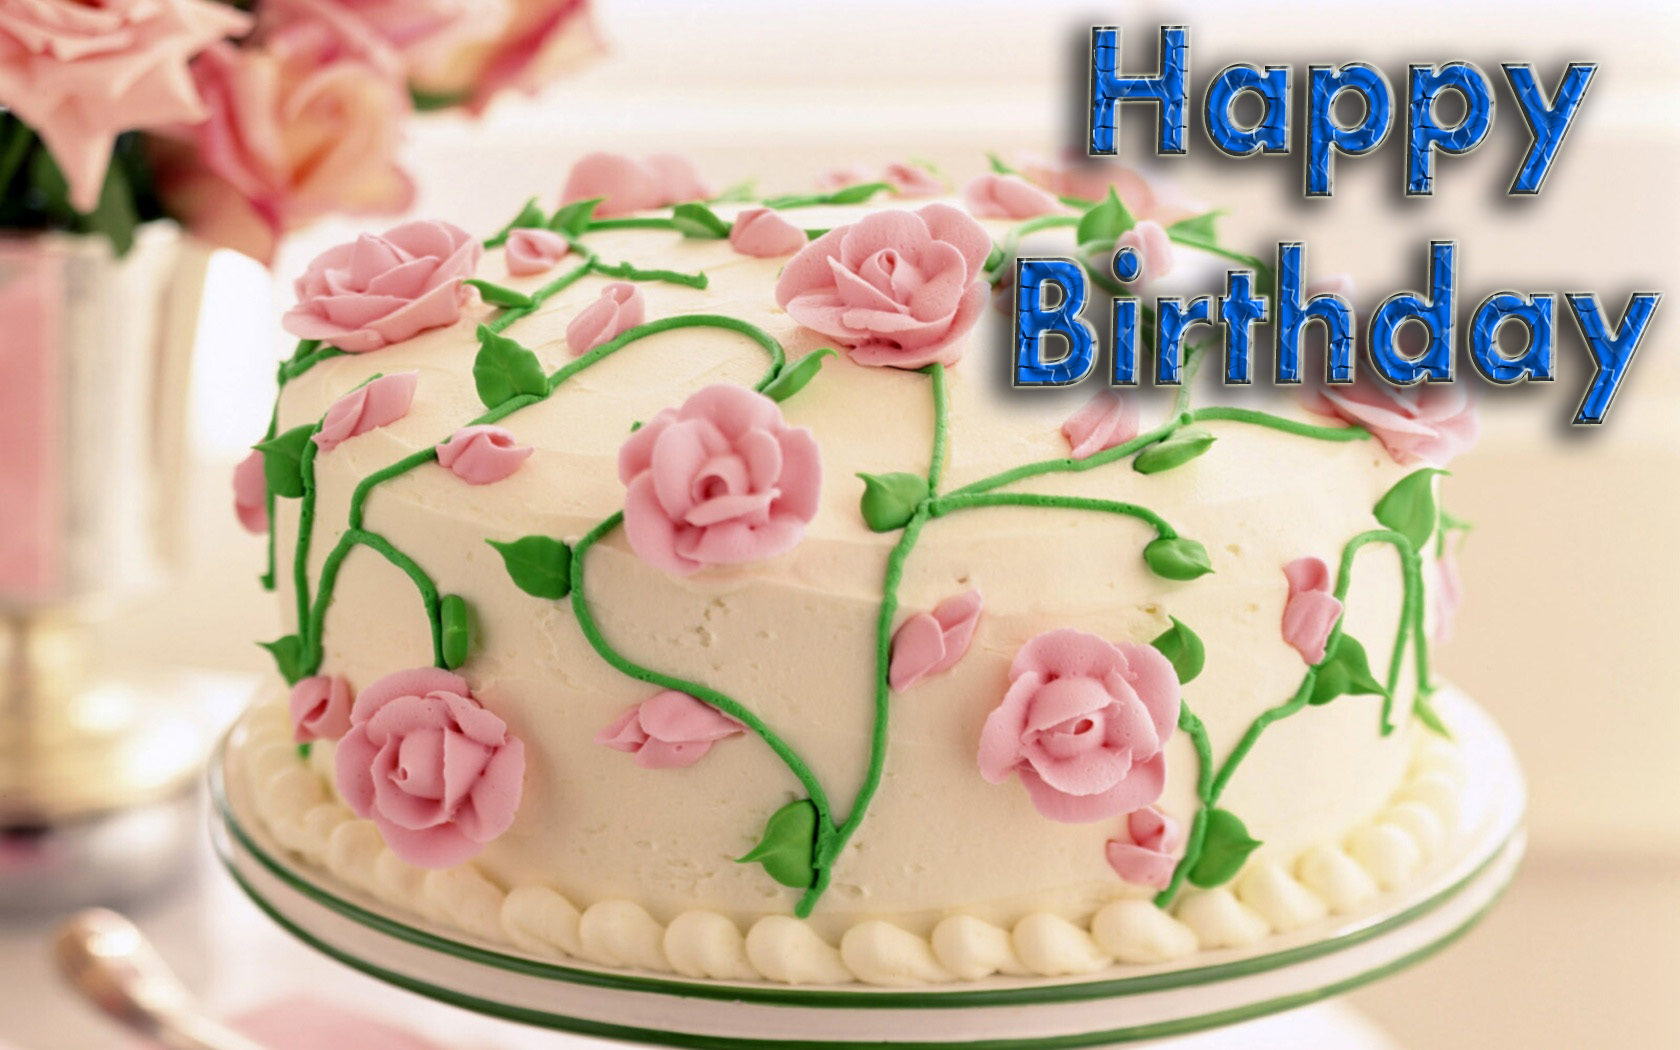 bday pics hd ; beautiful-birthday-cakes-wallpapers-2-1